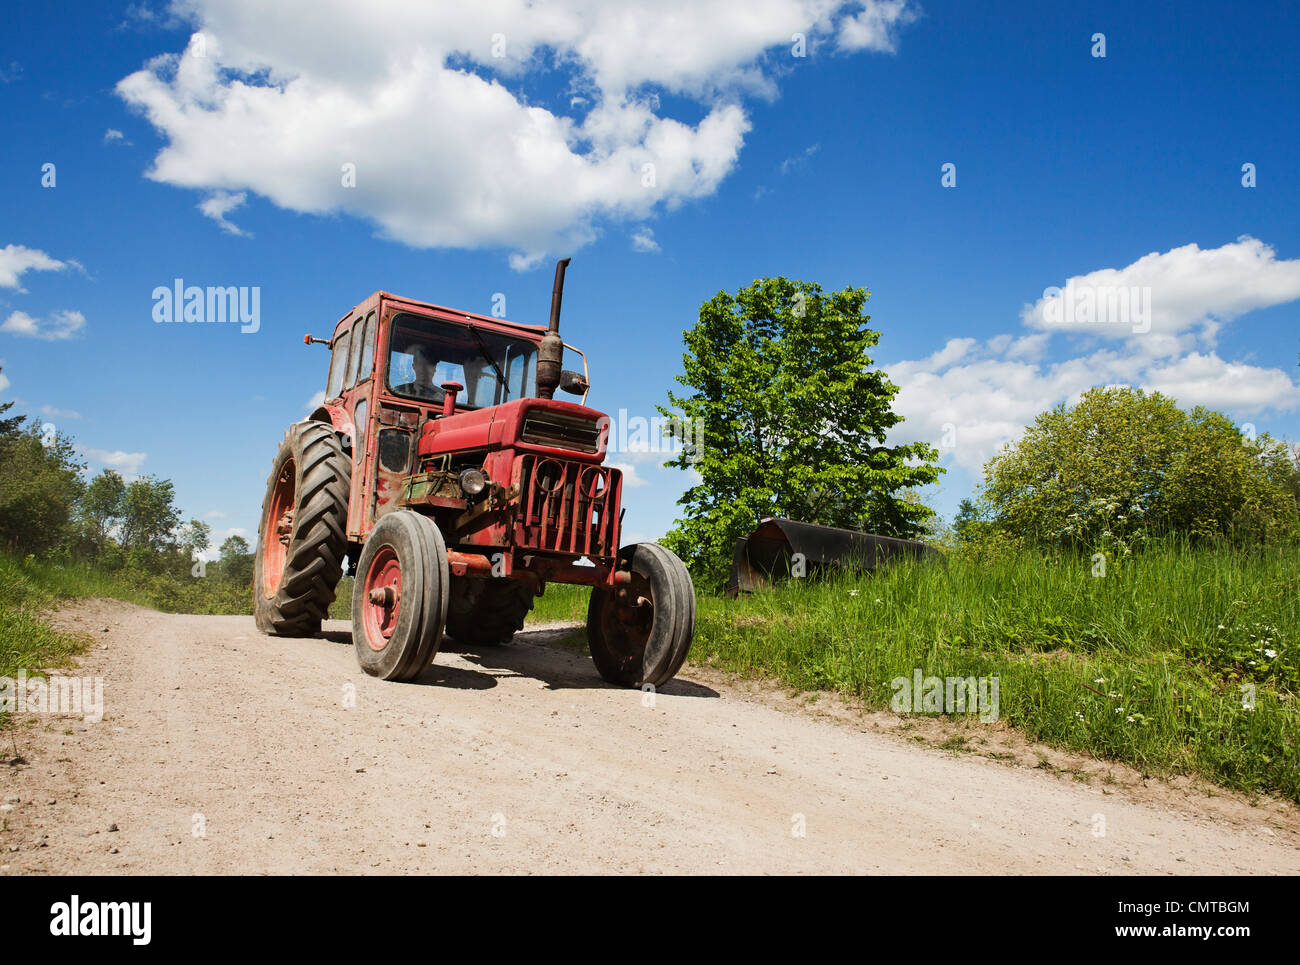 Tractor on country road - Stock Image